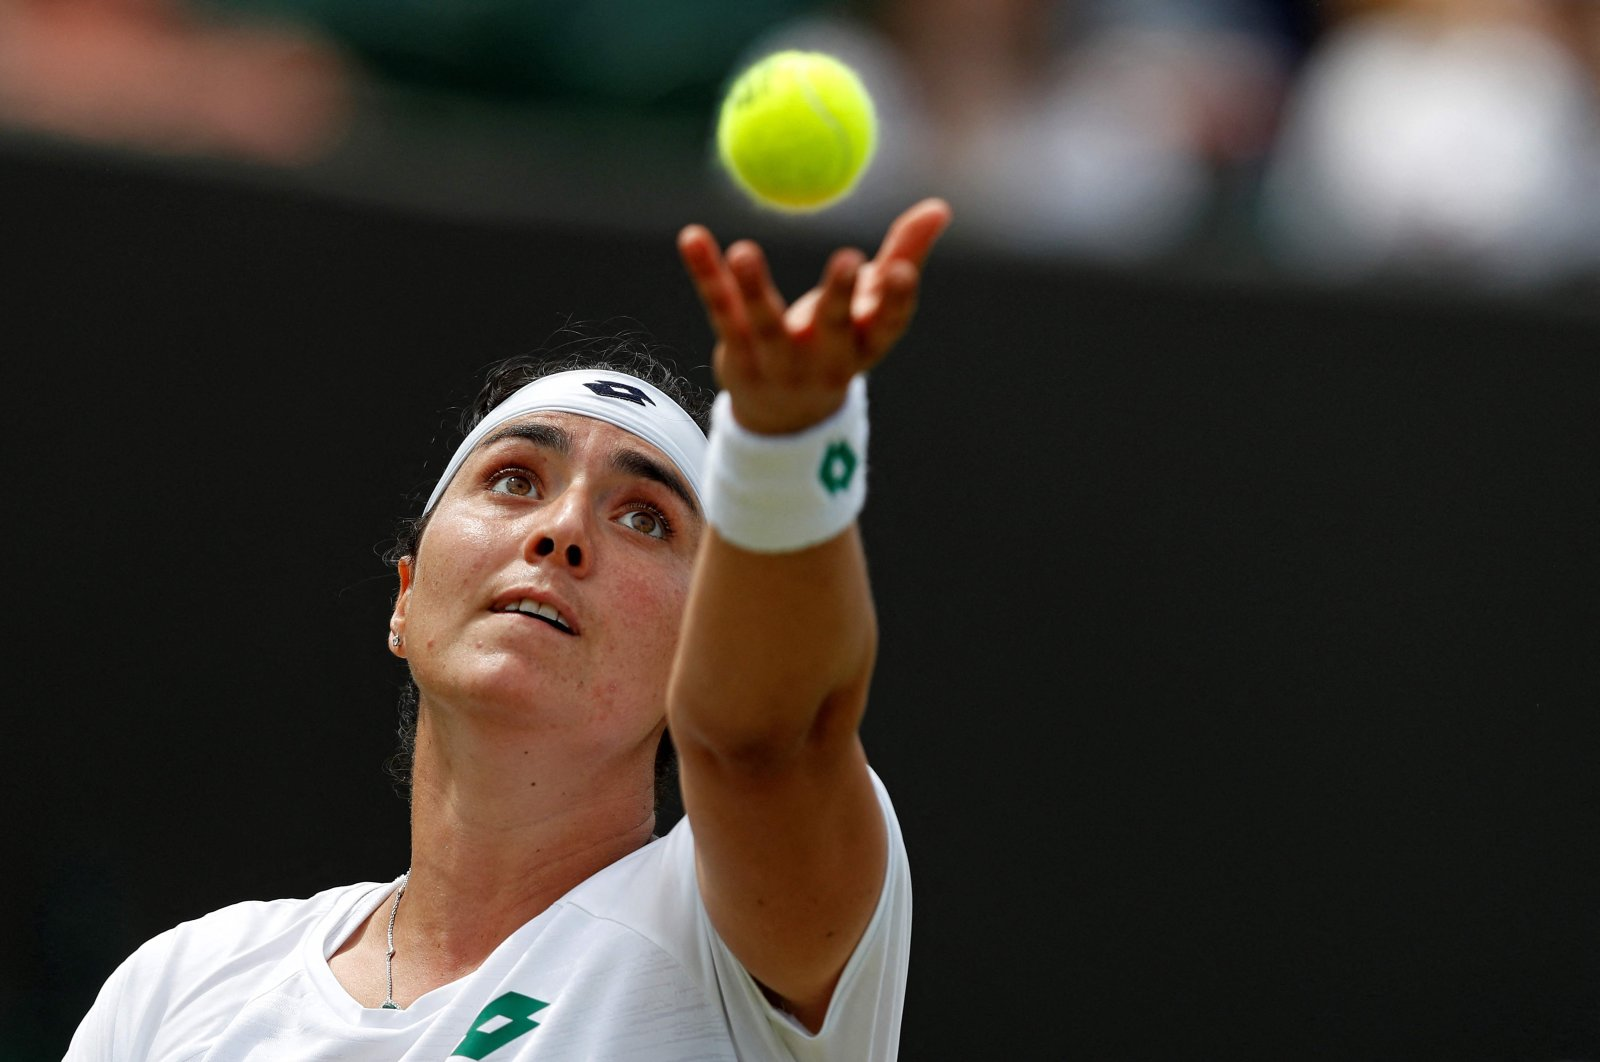 Tunisia's Ons Jabeur serves against Poland's Iga Swiatek during a fourth-round Wimbledon match in London, England, July 5, 2021. (AFP Photo)